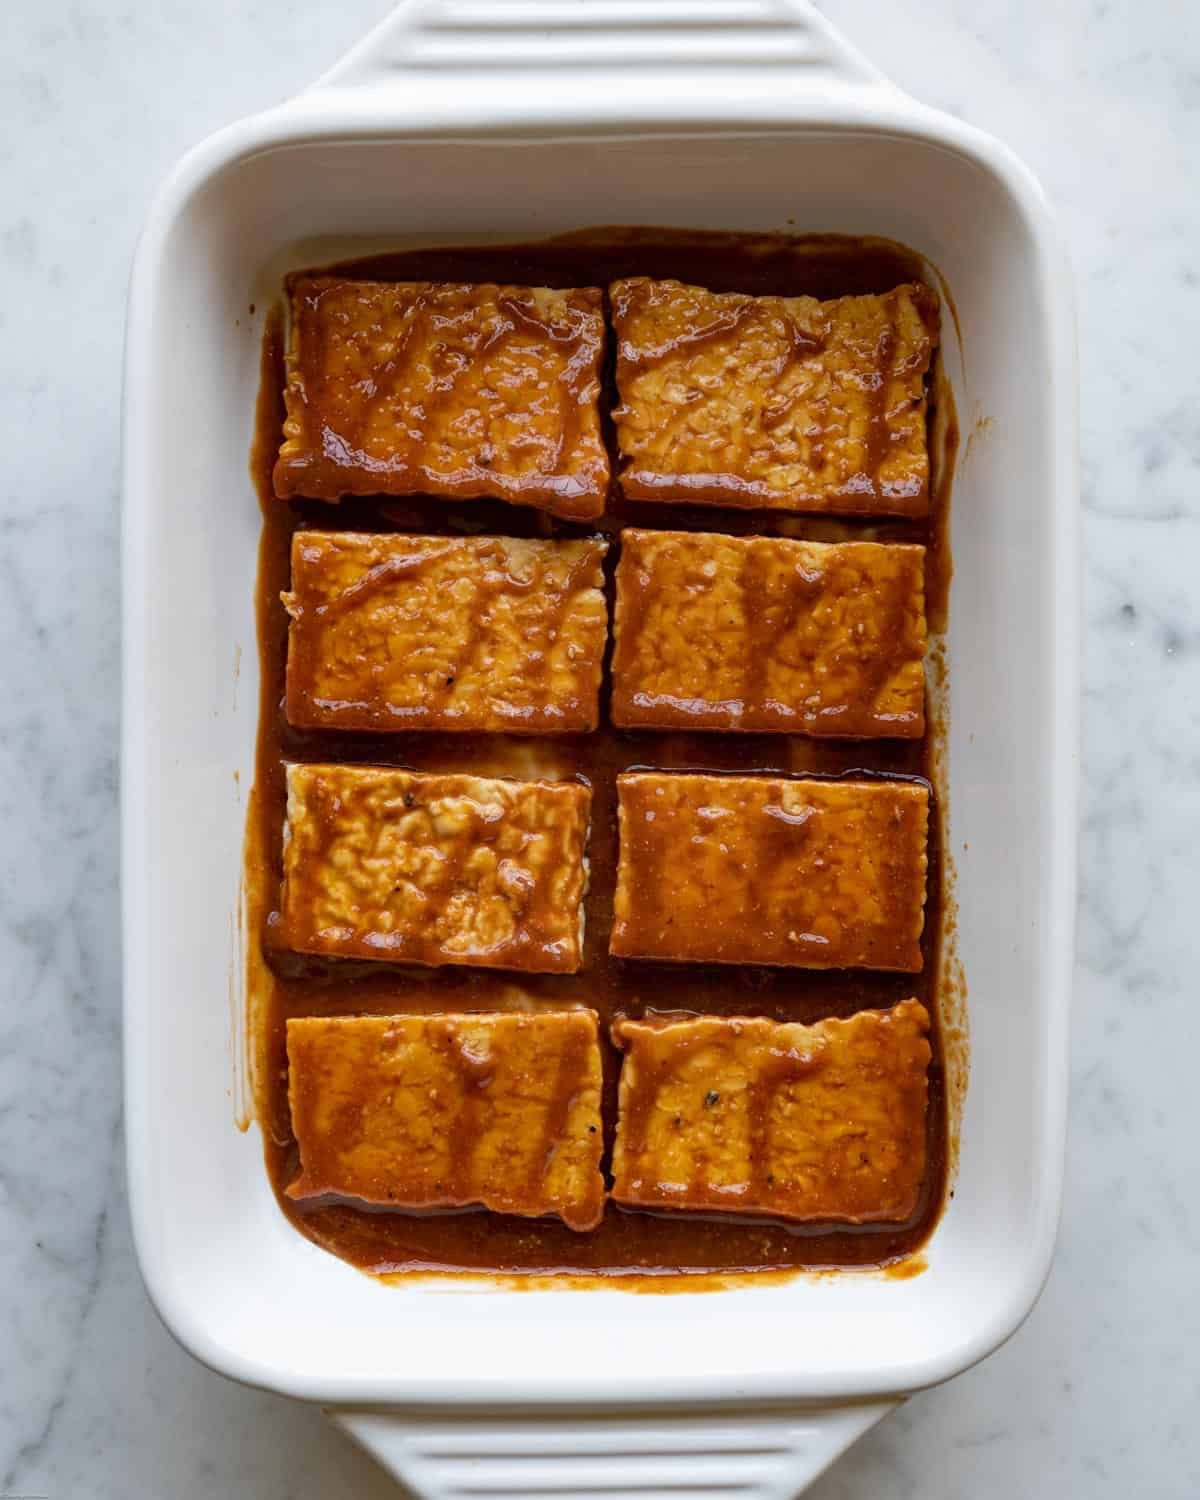 Tempeh rectangles in the umami marinade in a white casserole dish.